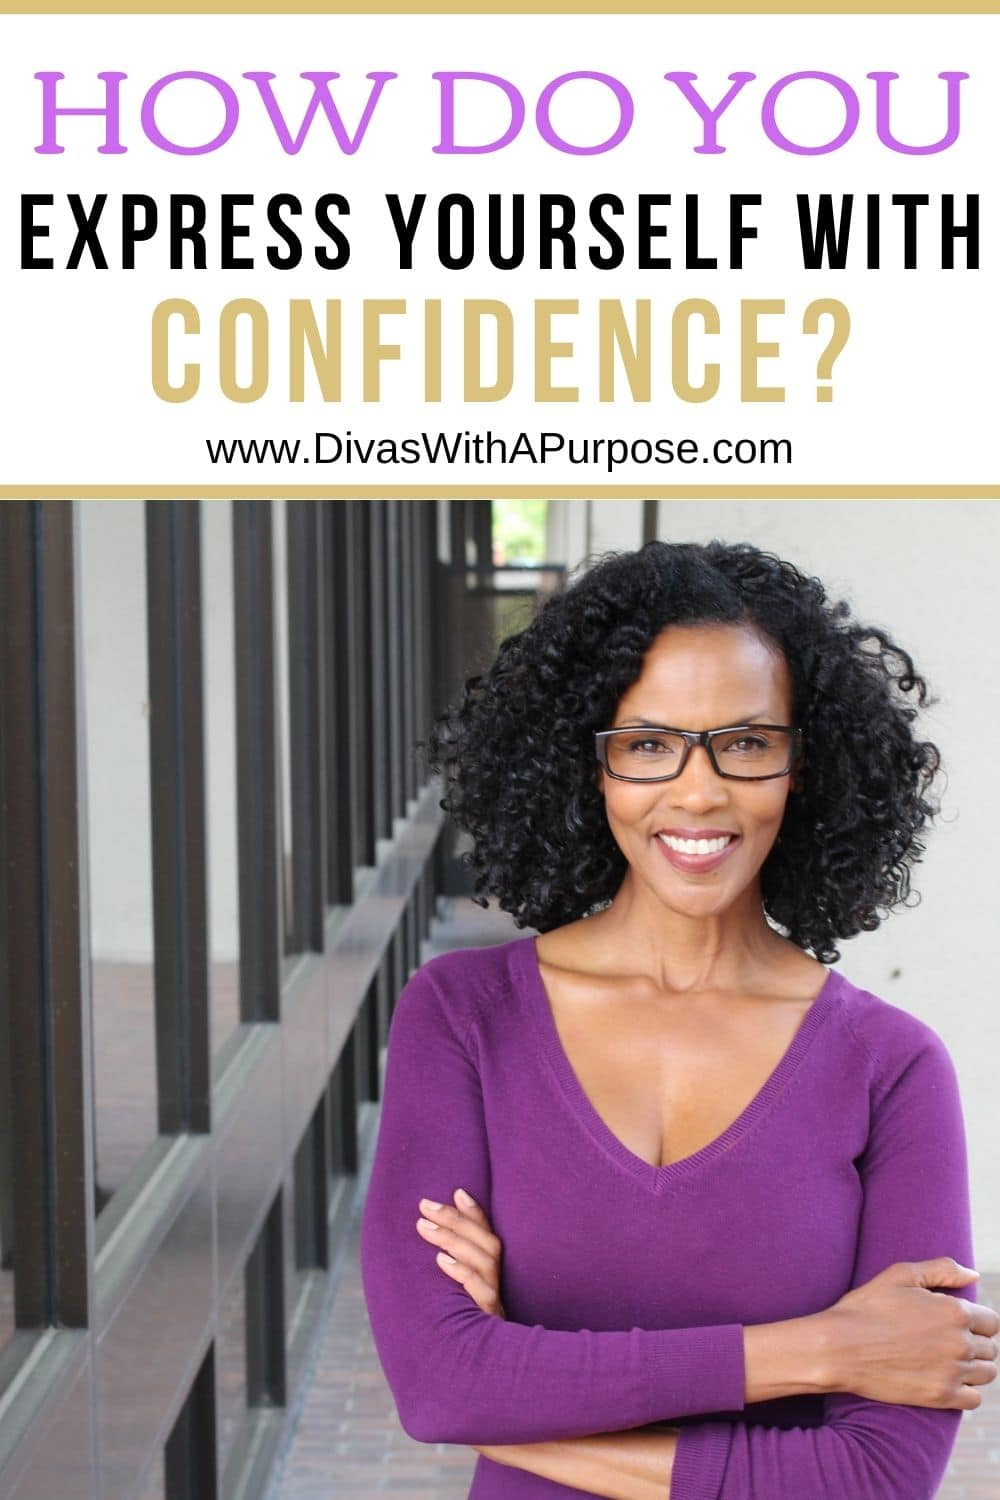 How do you express yourself with confidence? Did you know many people struggle to communicate and express themselves with confidence? It is a skill that can be learned and with some tips and a bit of practice, you can become more at ease when communicating with others. #expressyourself #confidence #personalgrowth